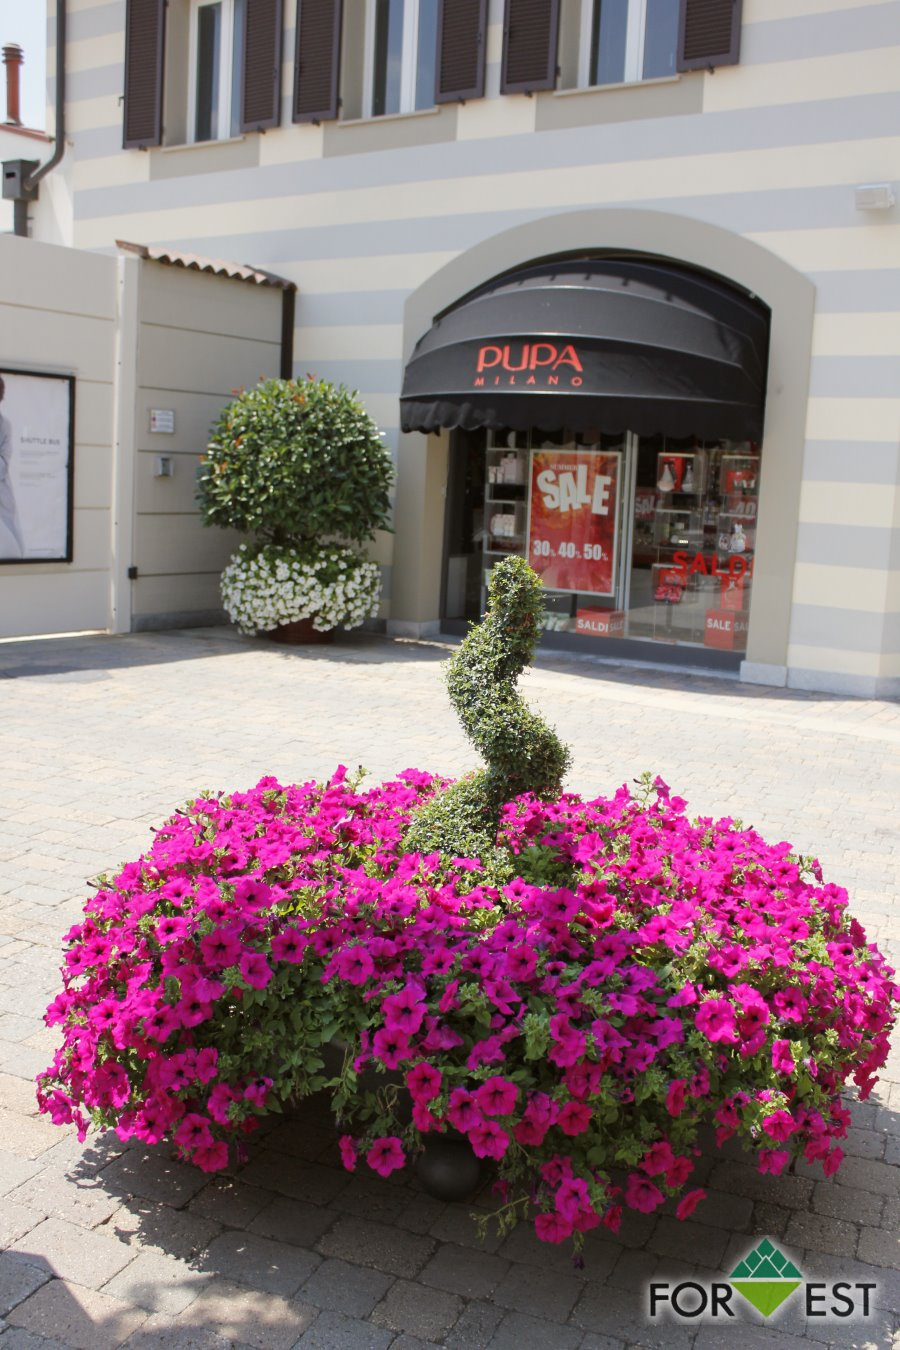 Fioriture estive 2014<br> Serravalle Designer Outlet